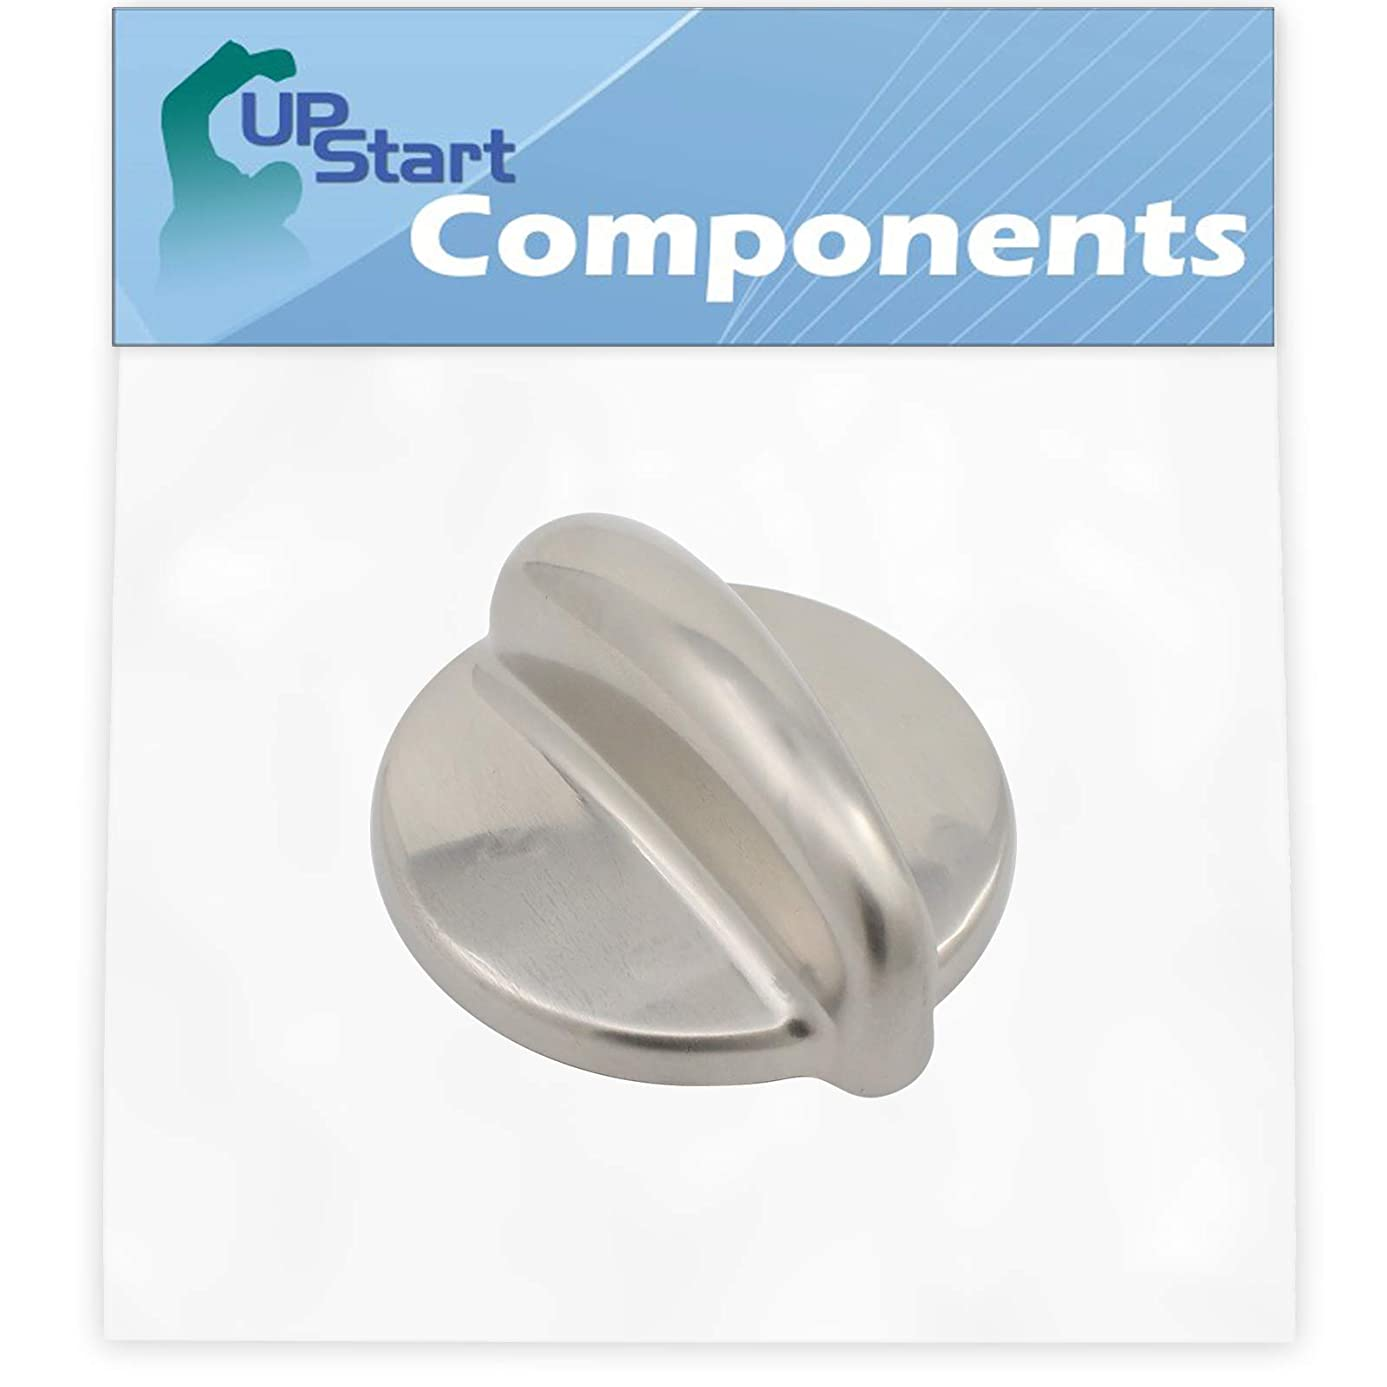 Replacement Surface Burner Control WB03K10303 Range, Stove, Oven Control Knob for General Electric P2B918SEM1SS Dual Fuel Range